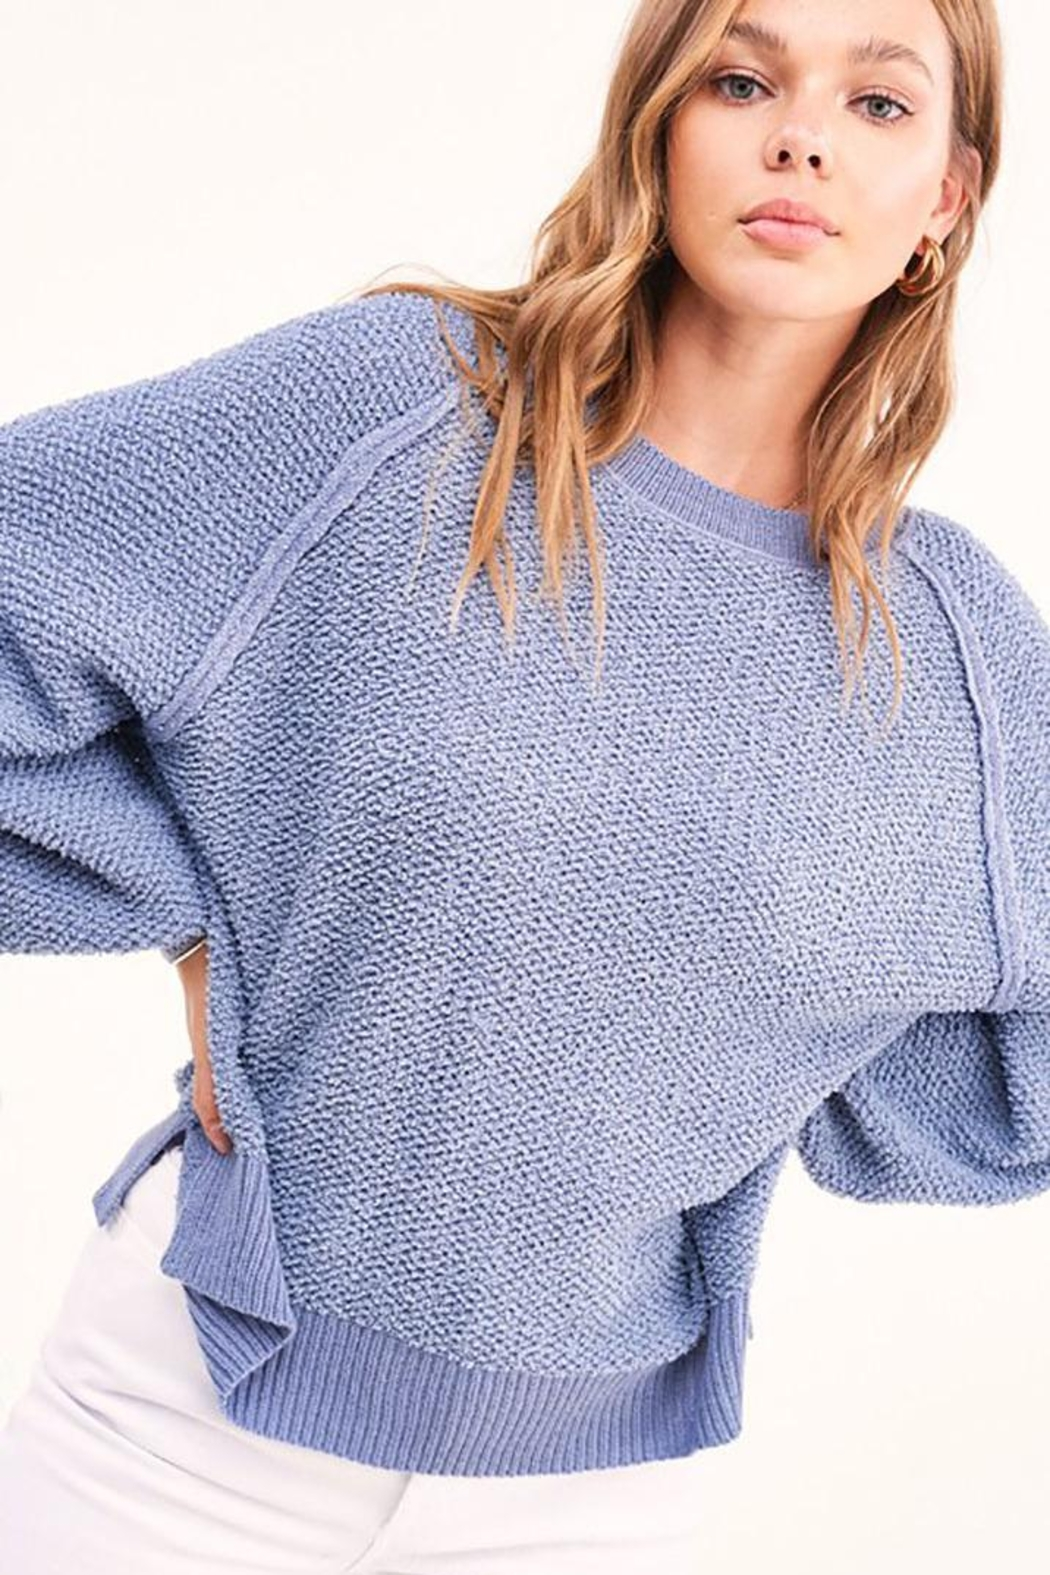 Mint Cloud Boutique Lightweight Knit Pullover Sweater Top - Front Full Image